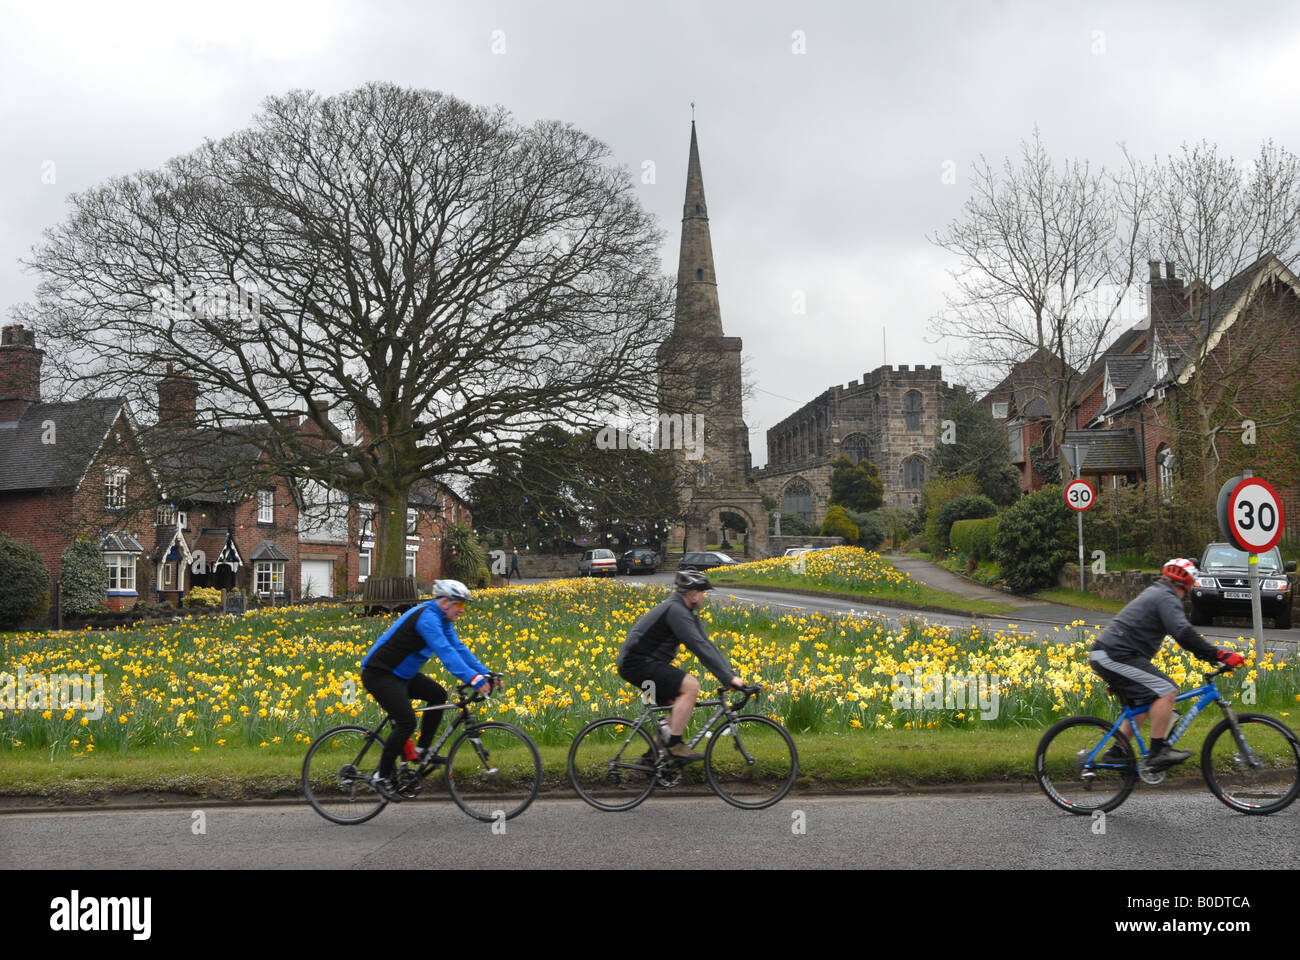 Photographer Howard Barlow Cycling in Cheshire through the village of ASTBURY - Stock Image